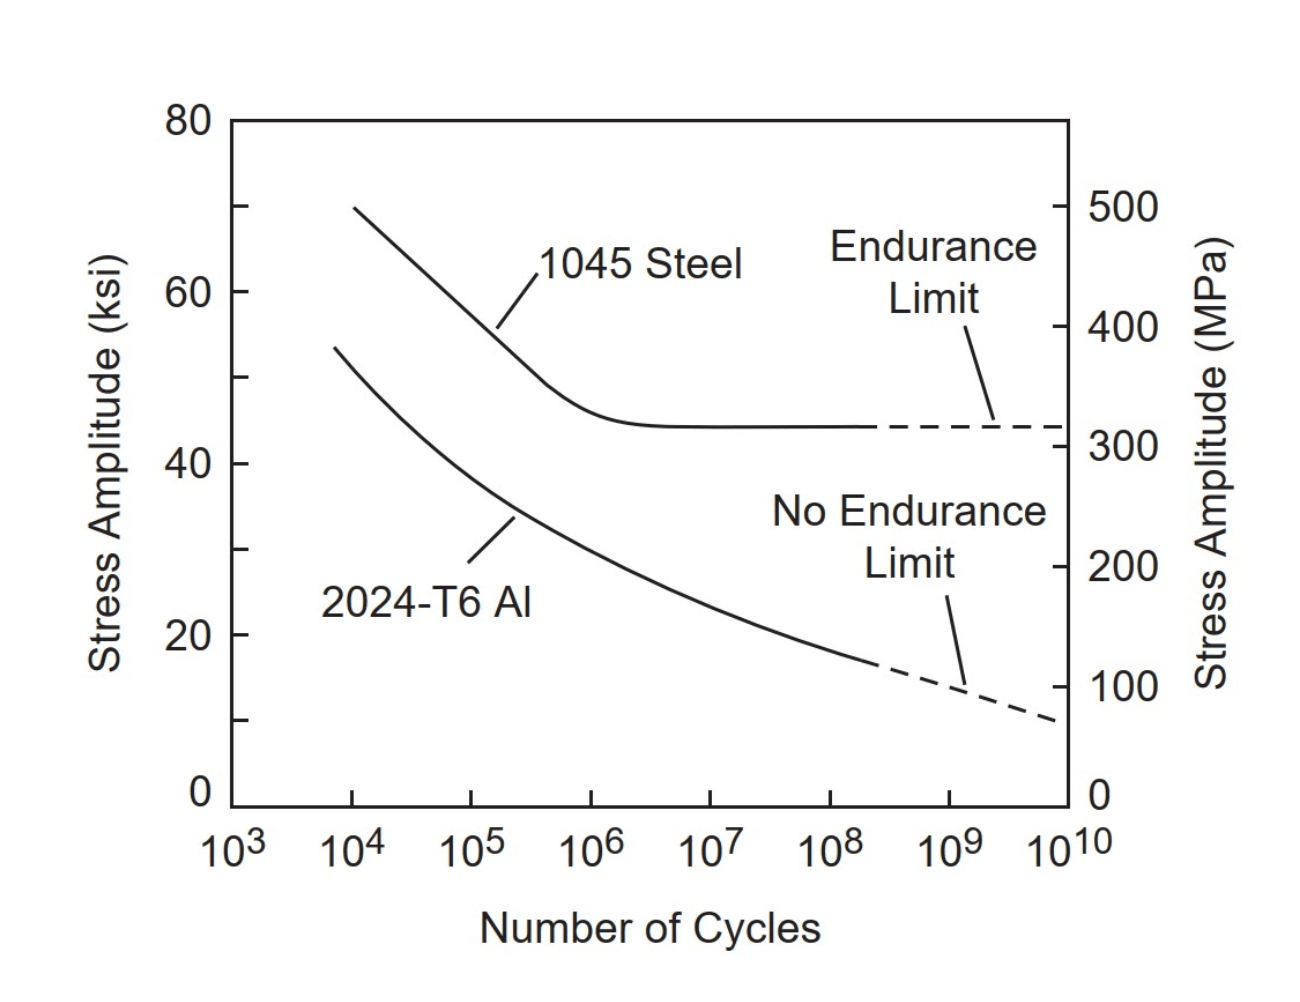 Figure 1. S−N curves for aluminium and low-carbon steel [1].